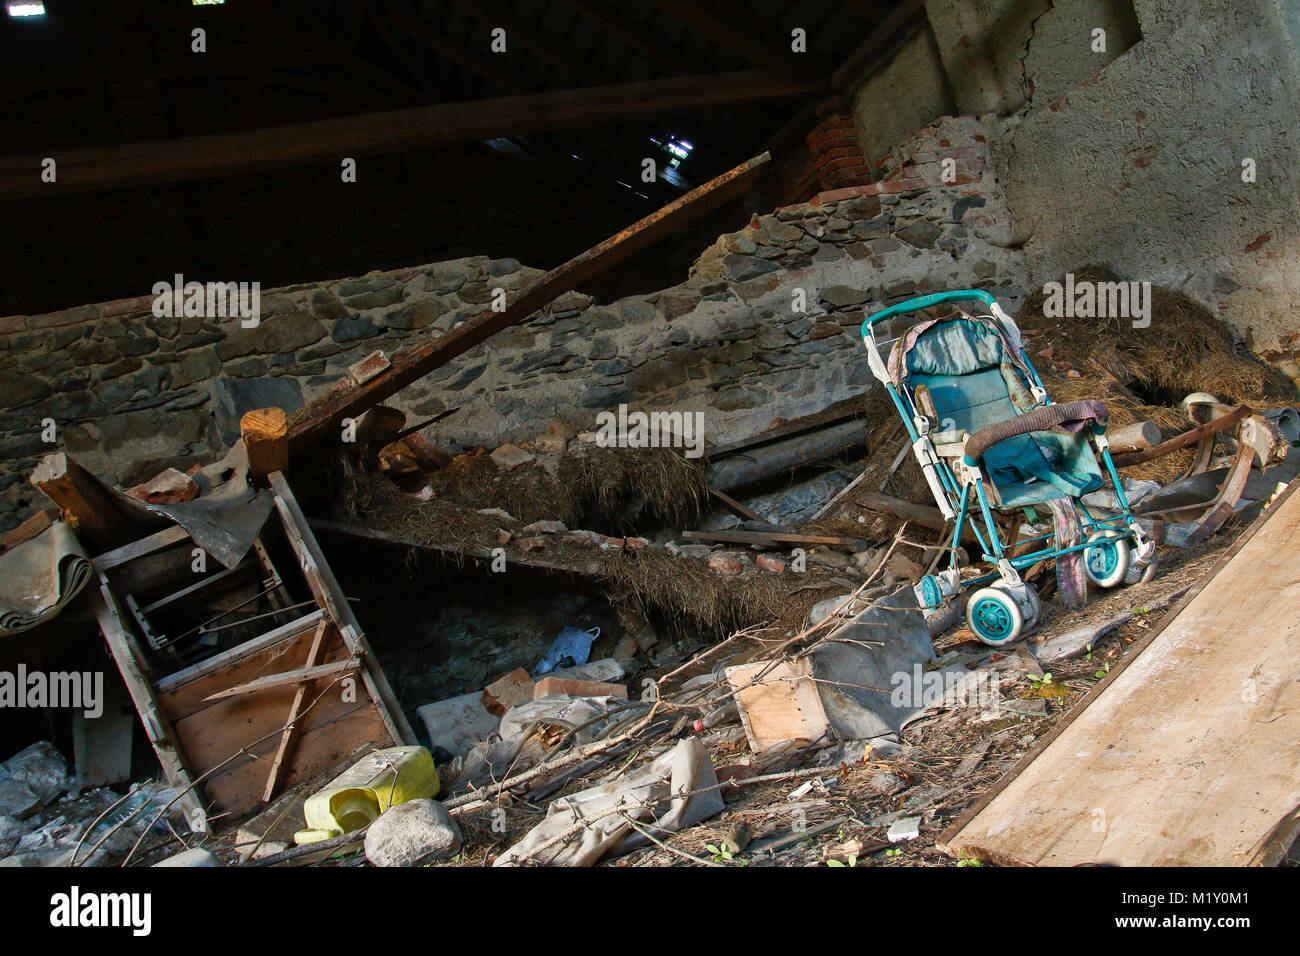 The interior of and old ruin is filled with a mess. An abandoned baby carriage can be seen. - Stock Image